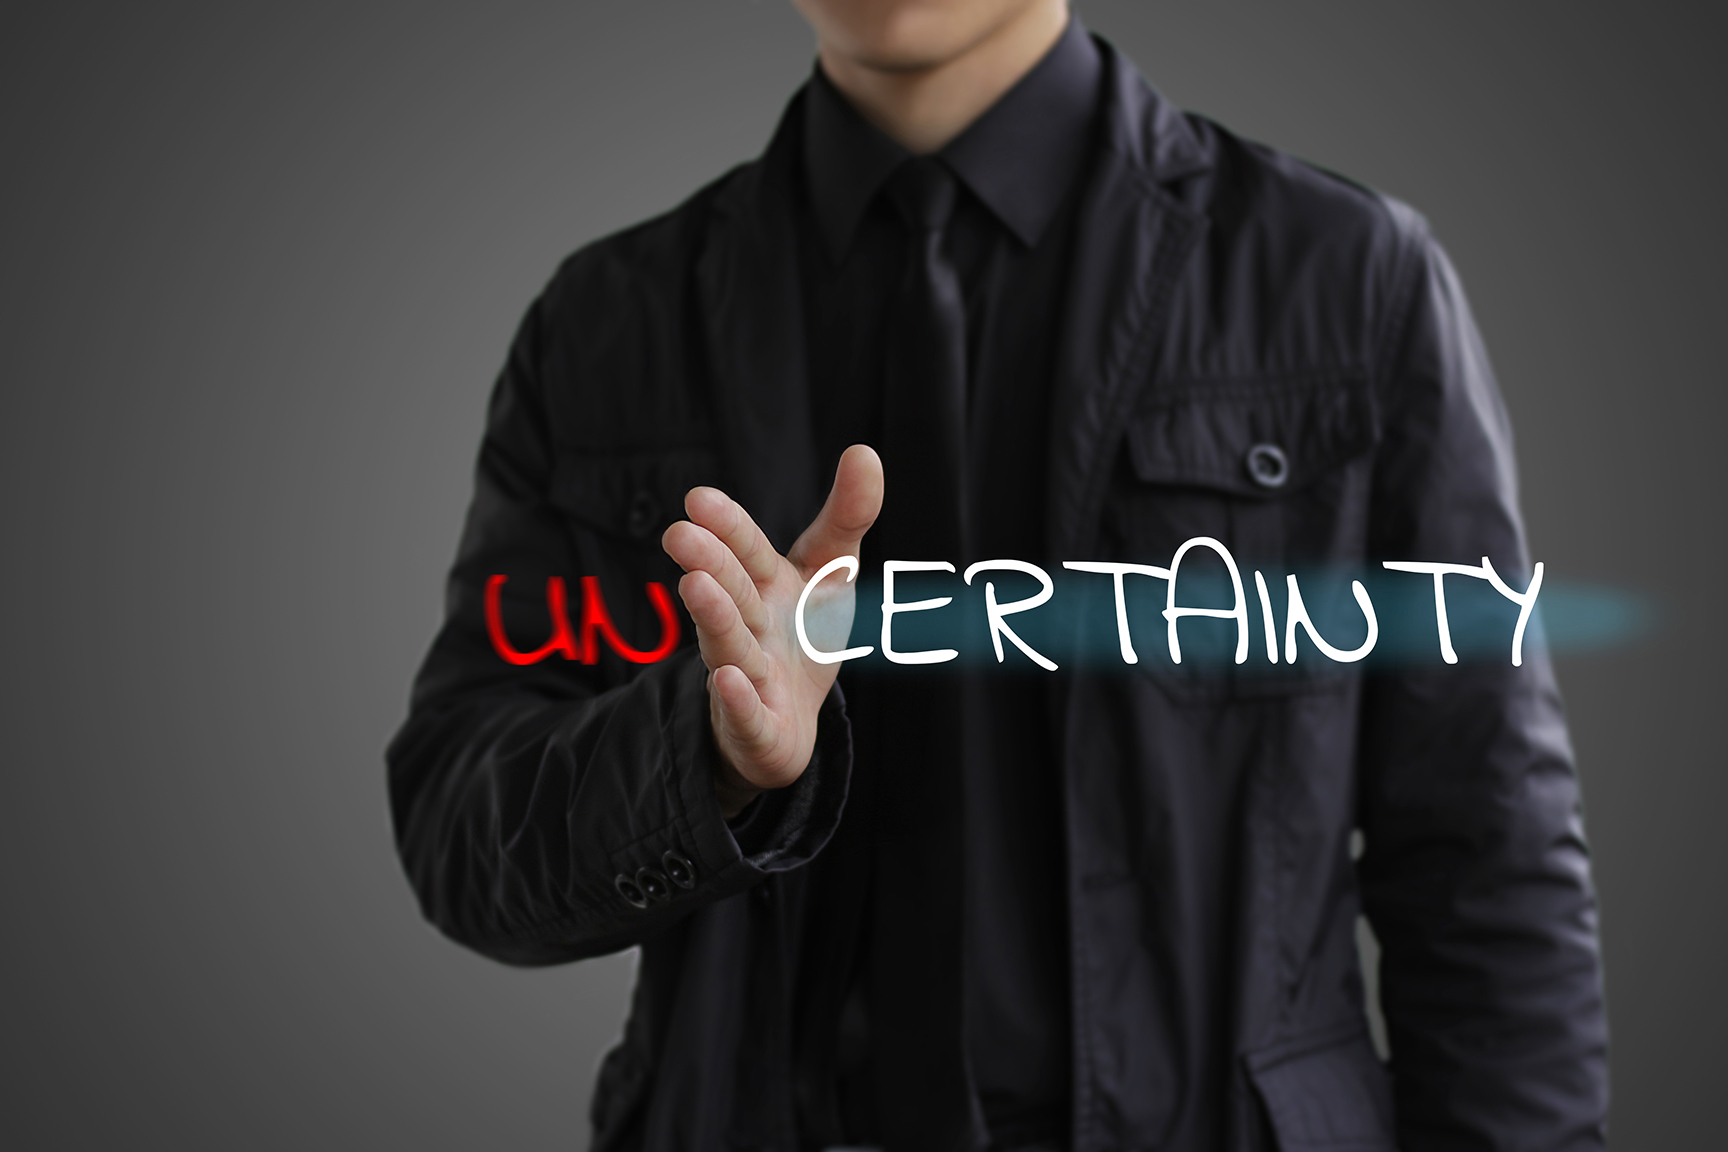 Certainty v Uncertainty